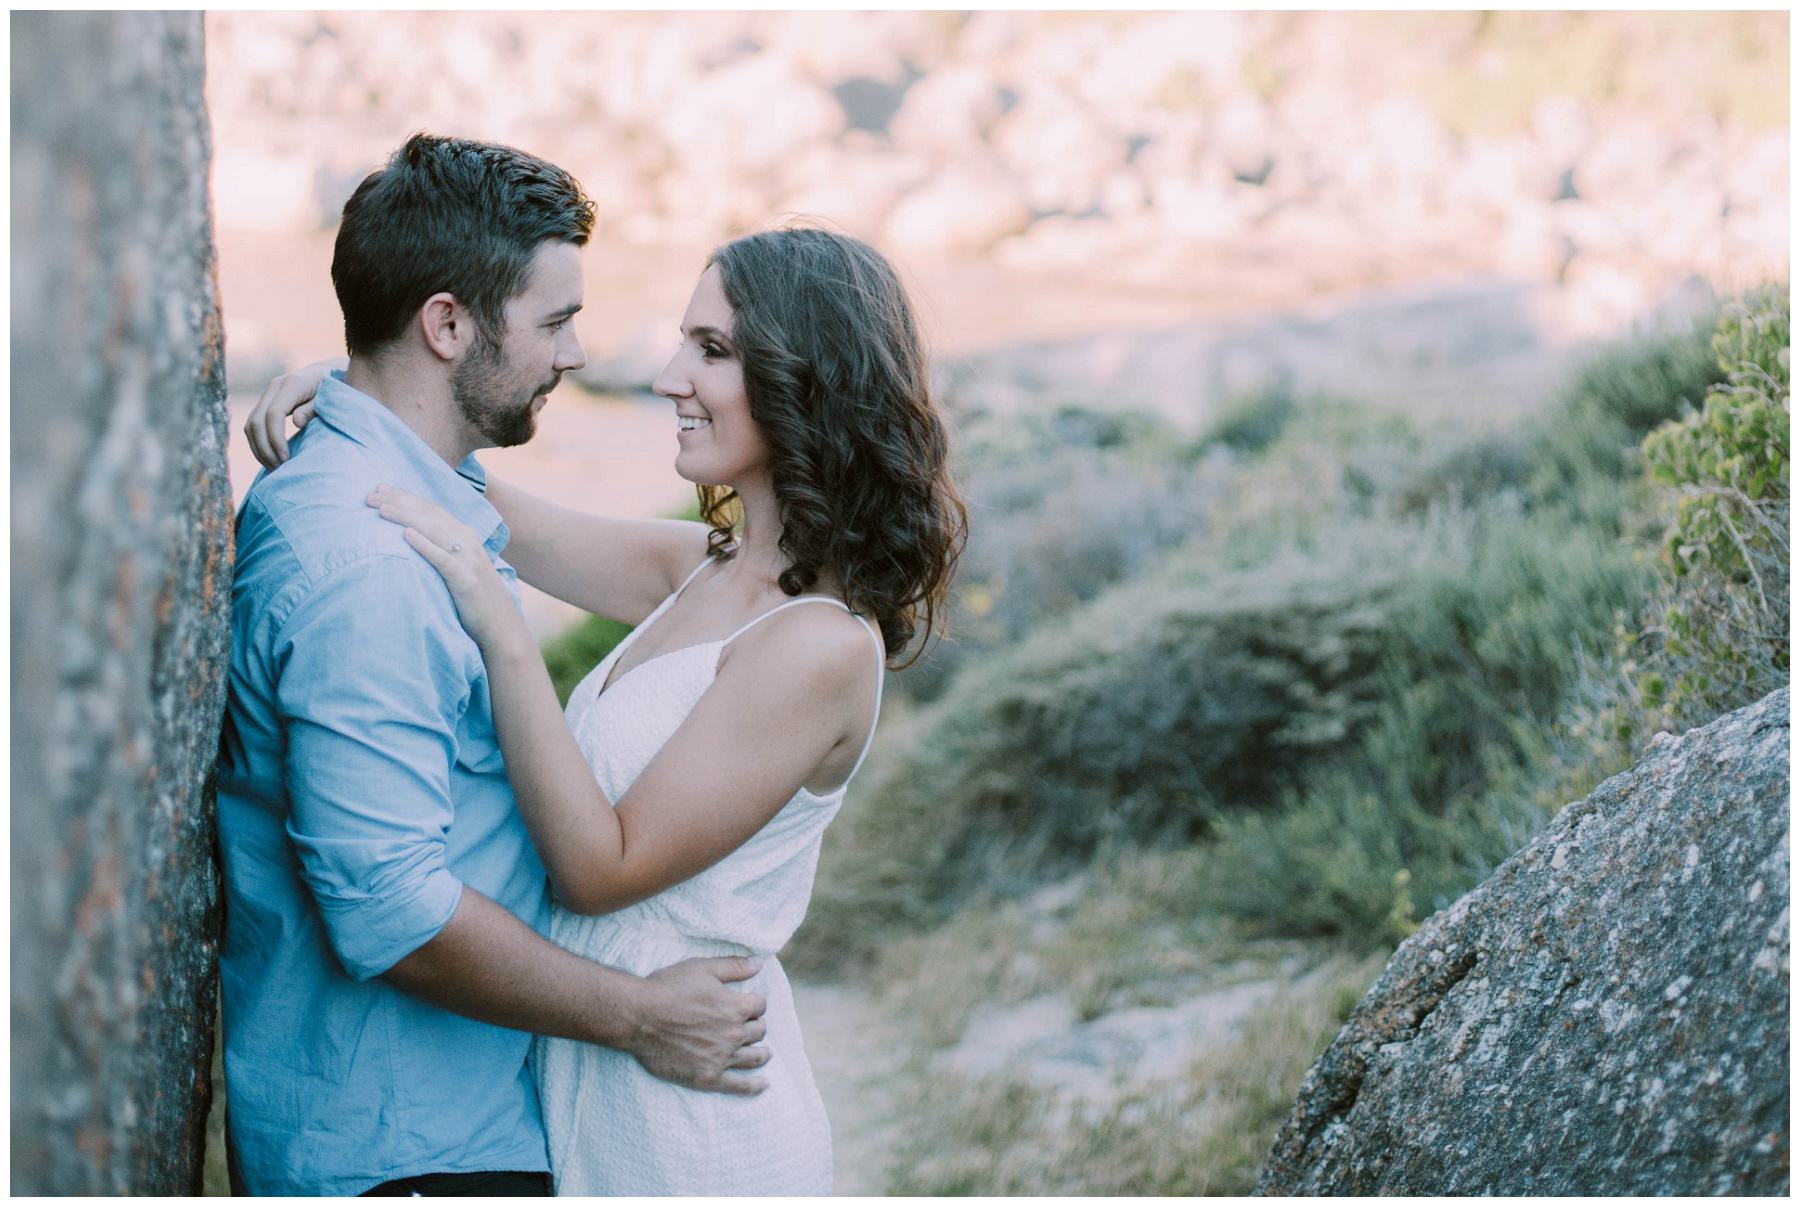 Ronel Kruger Cape Town Wedding and Lifestyle Photographer_8434.jpg